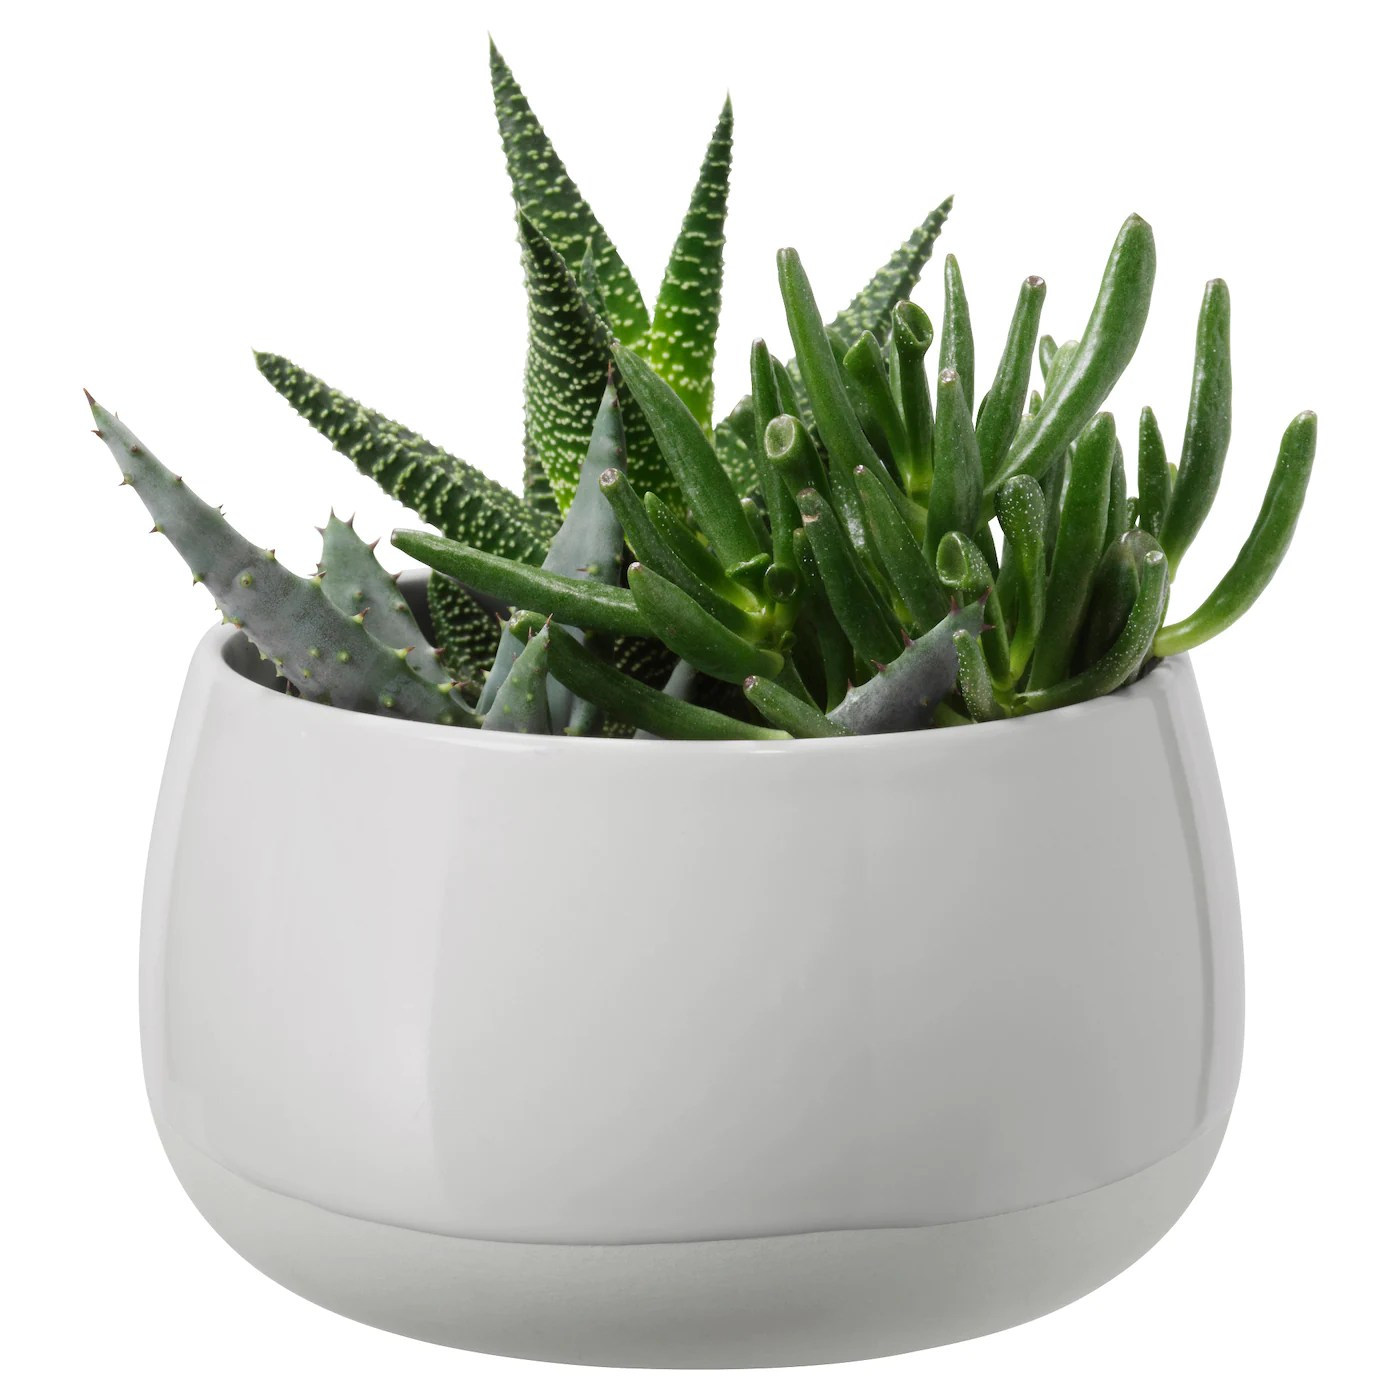 Cactus Planting Pots Succulent Potted Plant With Pot Grey 12 Cm Ikea